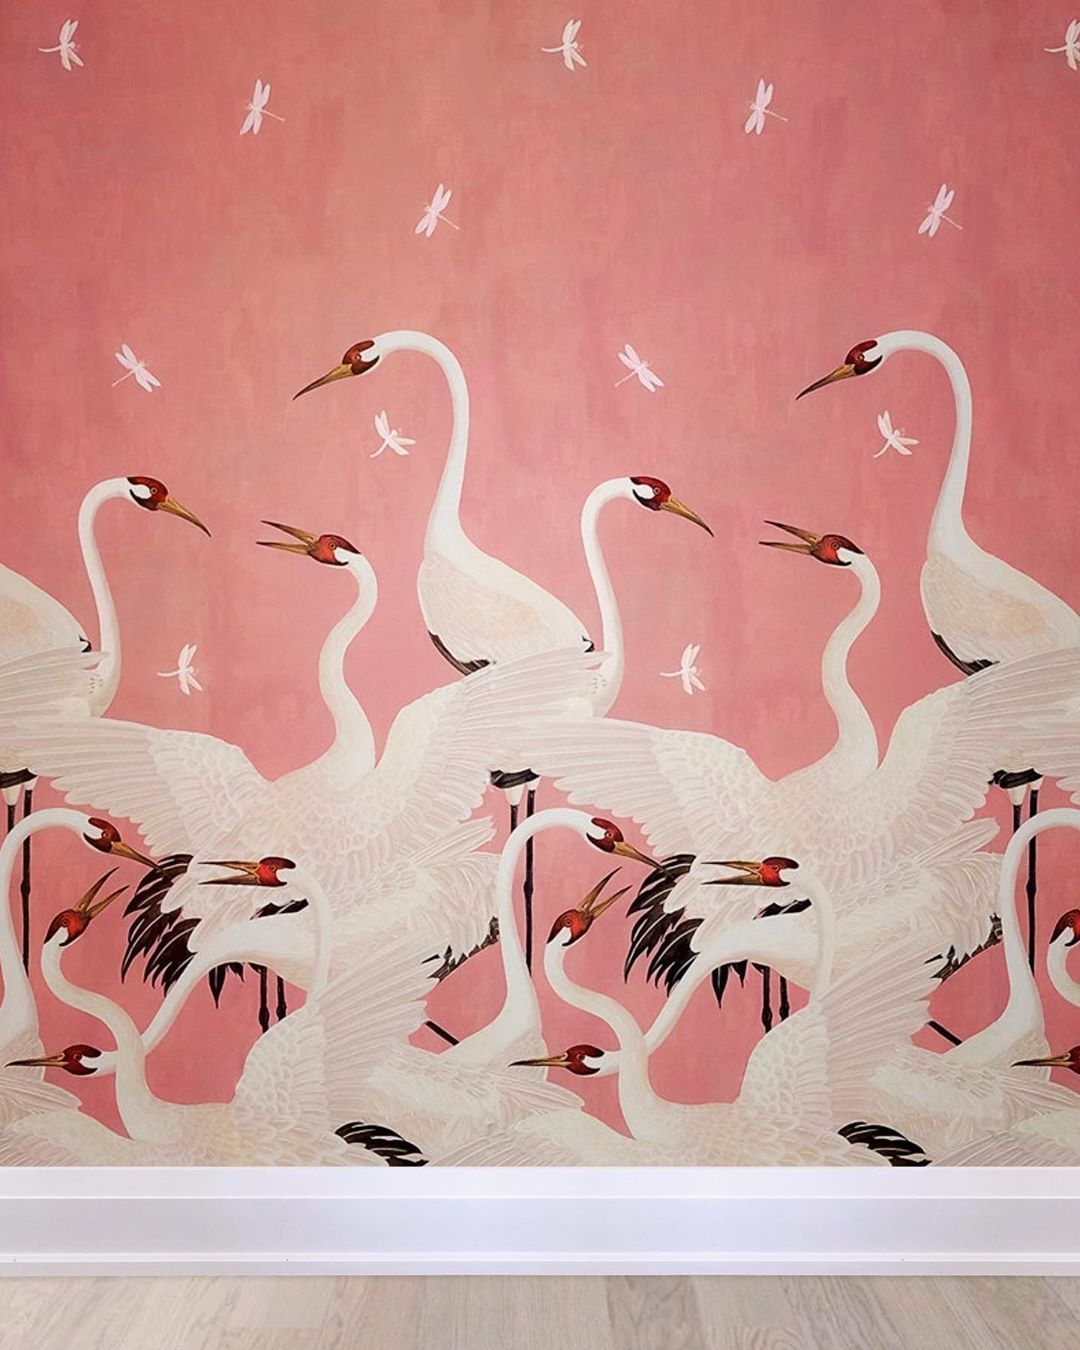 Gucci in Pink. Love installing vibrant and whimsical